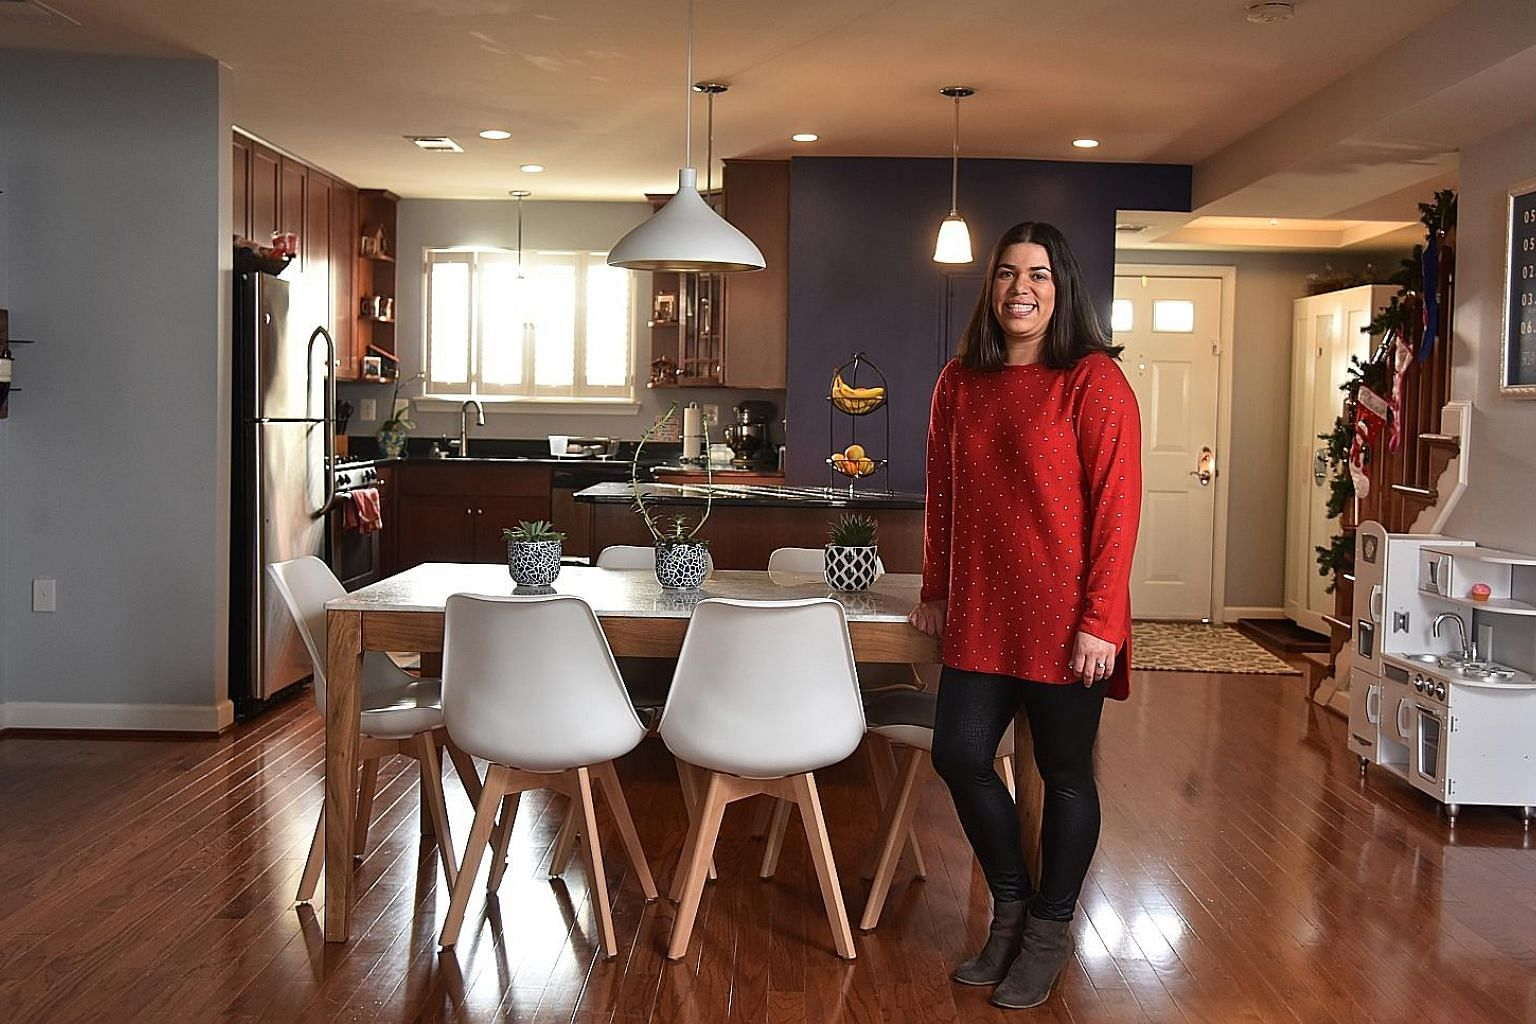 Mrs Eliana Kee in her three-bedroom, townhouse-style condominium in the Shirlington area of Arlington, Virginia.